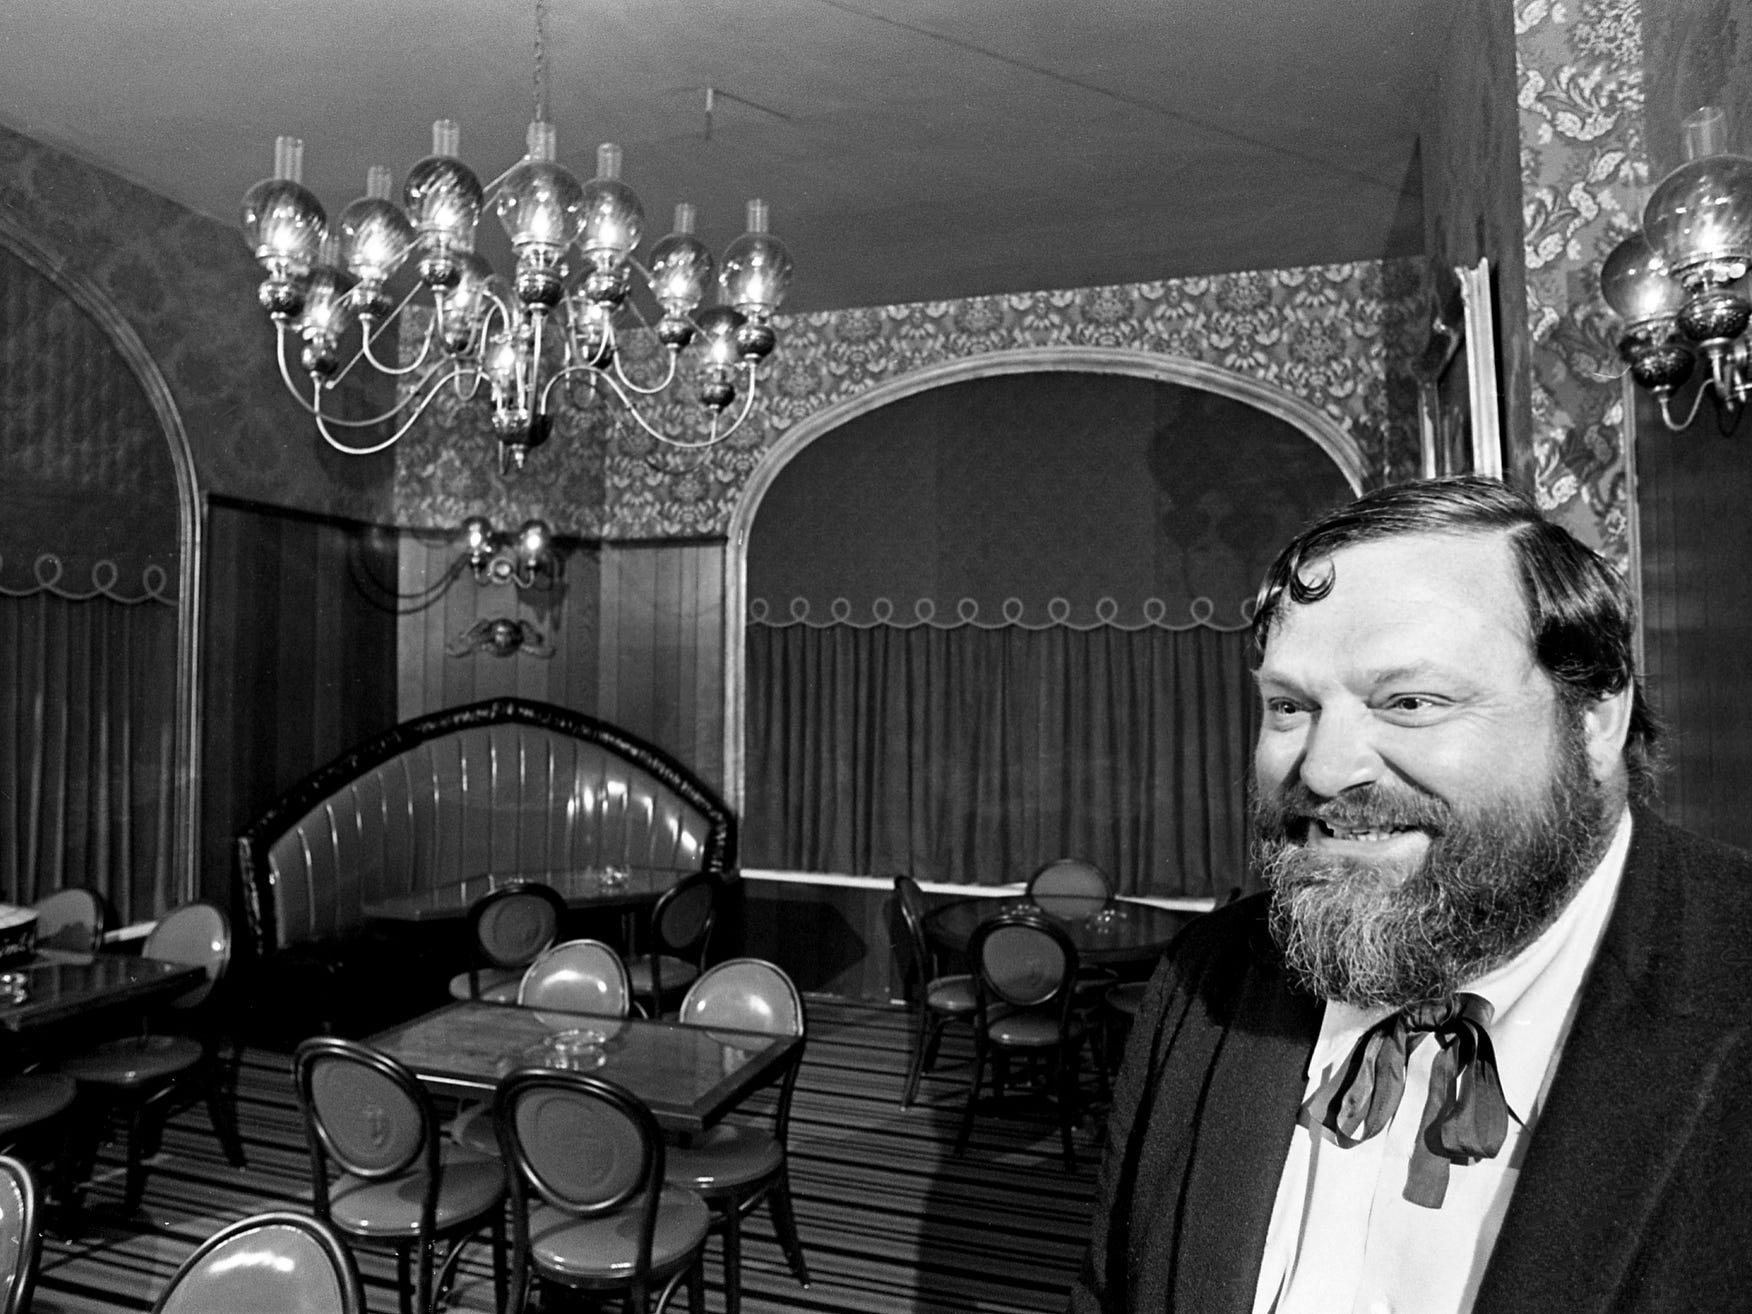 """Man, it's beautiful,"" said famed New Orleans trumpeter Al Hirt as he checks out the new upstairs room of his Nashville's Al Hirt Sandwich Saloon at Second Avenue and Broadway on Nov. 27, 1968."